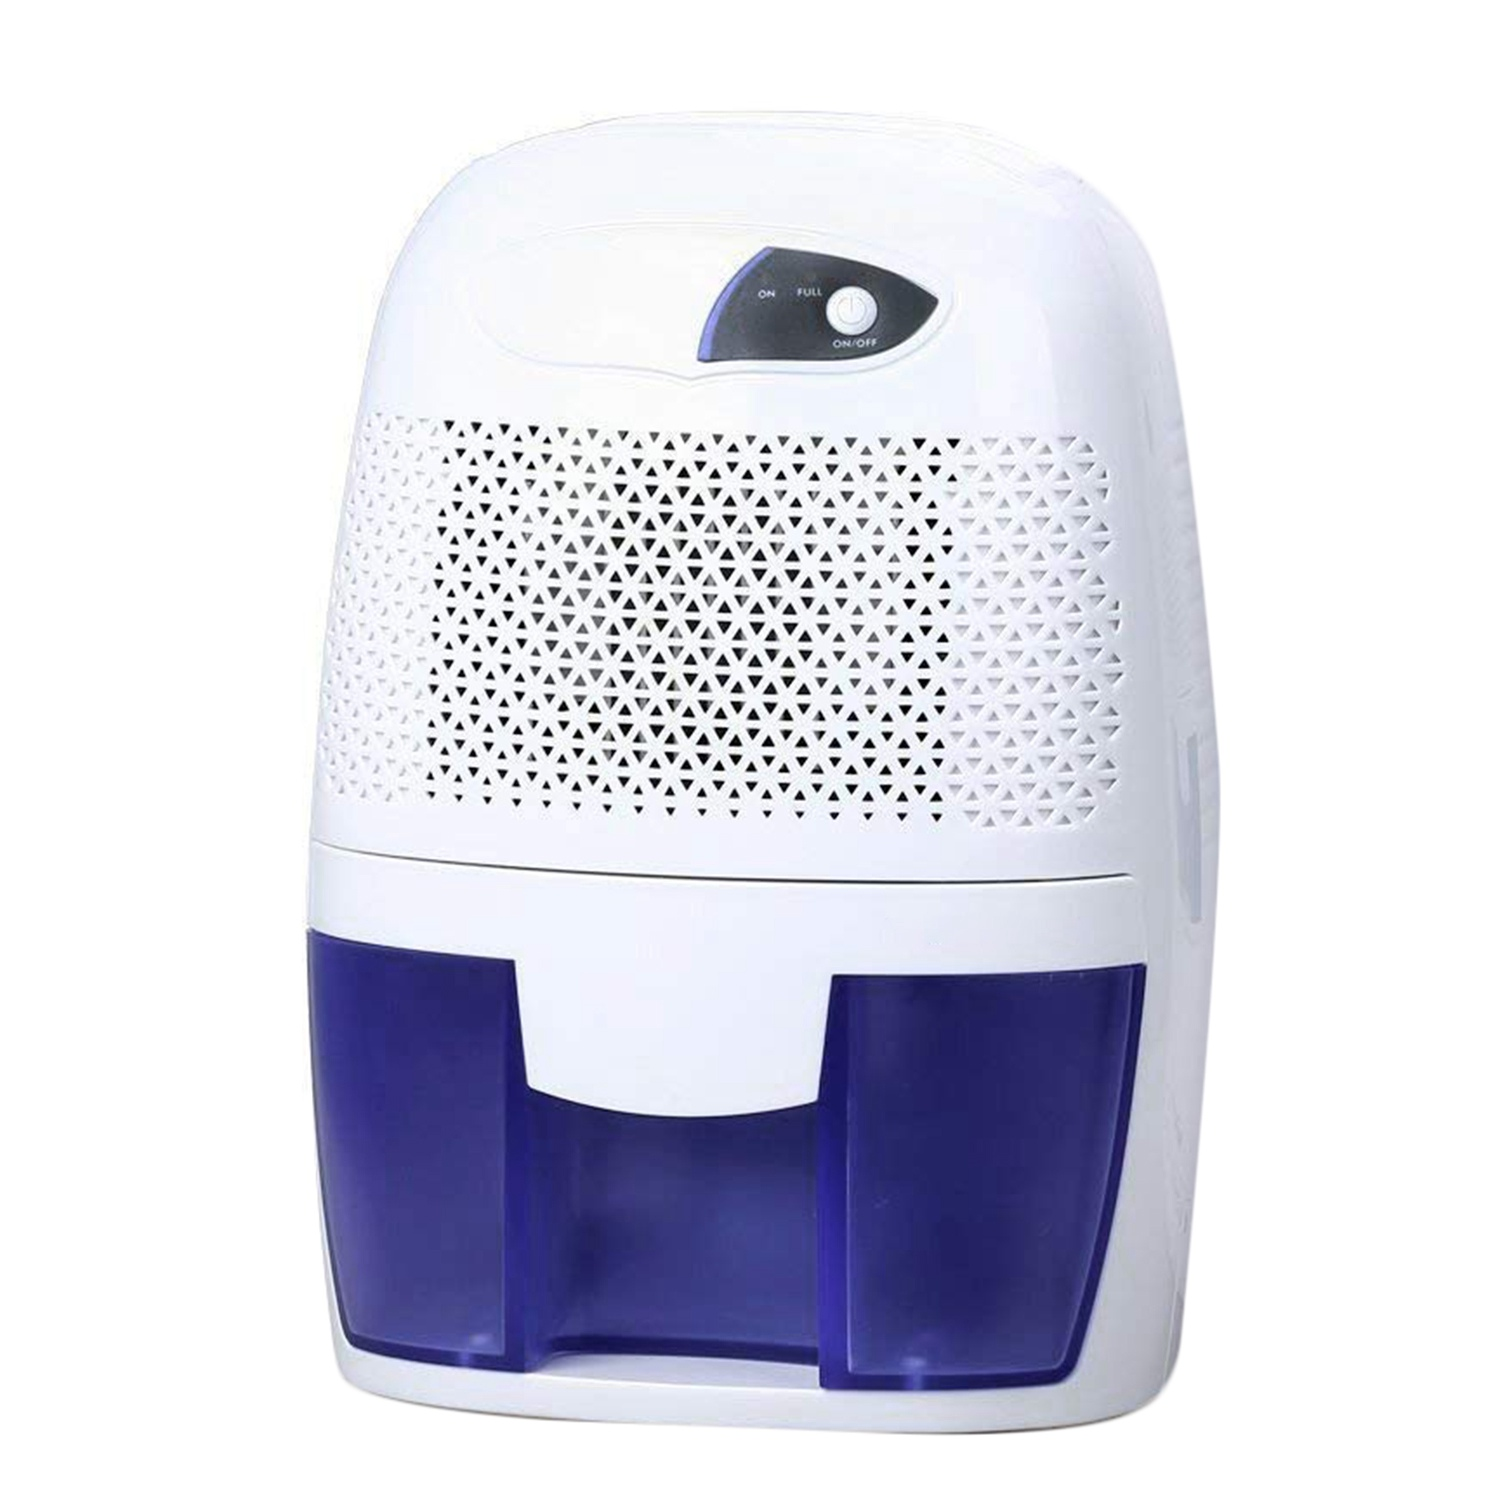 Portable MINI Dehumidifier Electric Quiet Air Dryer 110V 220V Air Dehumidifiers Moisture Absorber Home Bathroom EU PLUGPortable MINI Dehumidifier Electric Quiet Air Dryer 110V 220V Air Dehumidifiers Moisture Absorber Home Bathroom EU PLUG